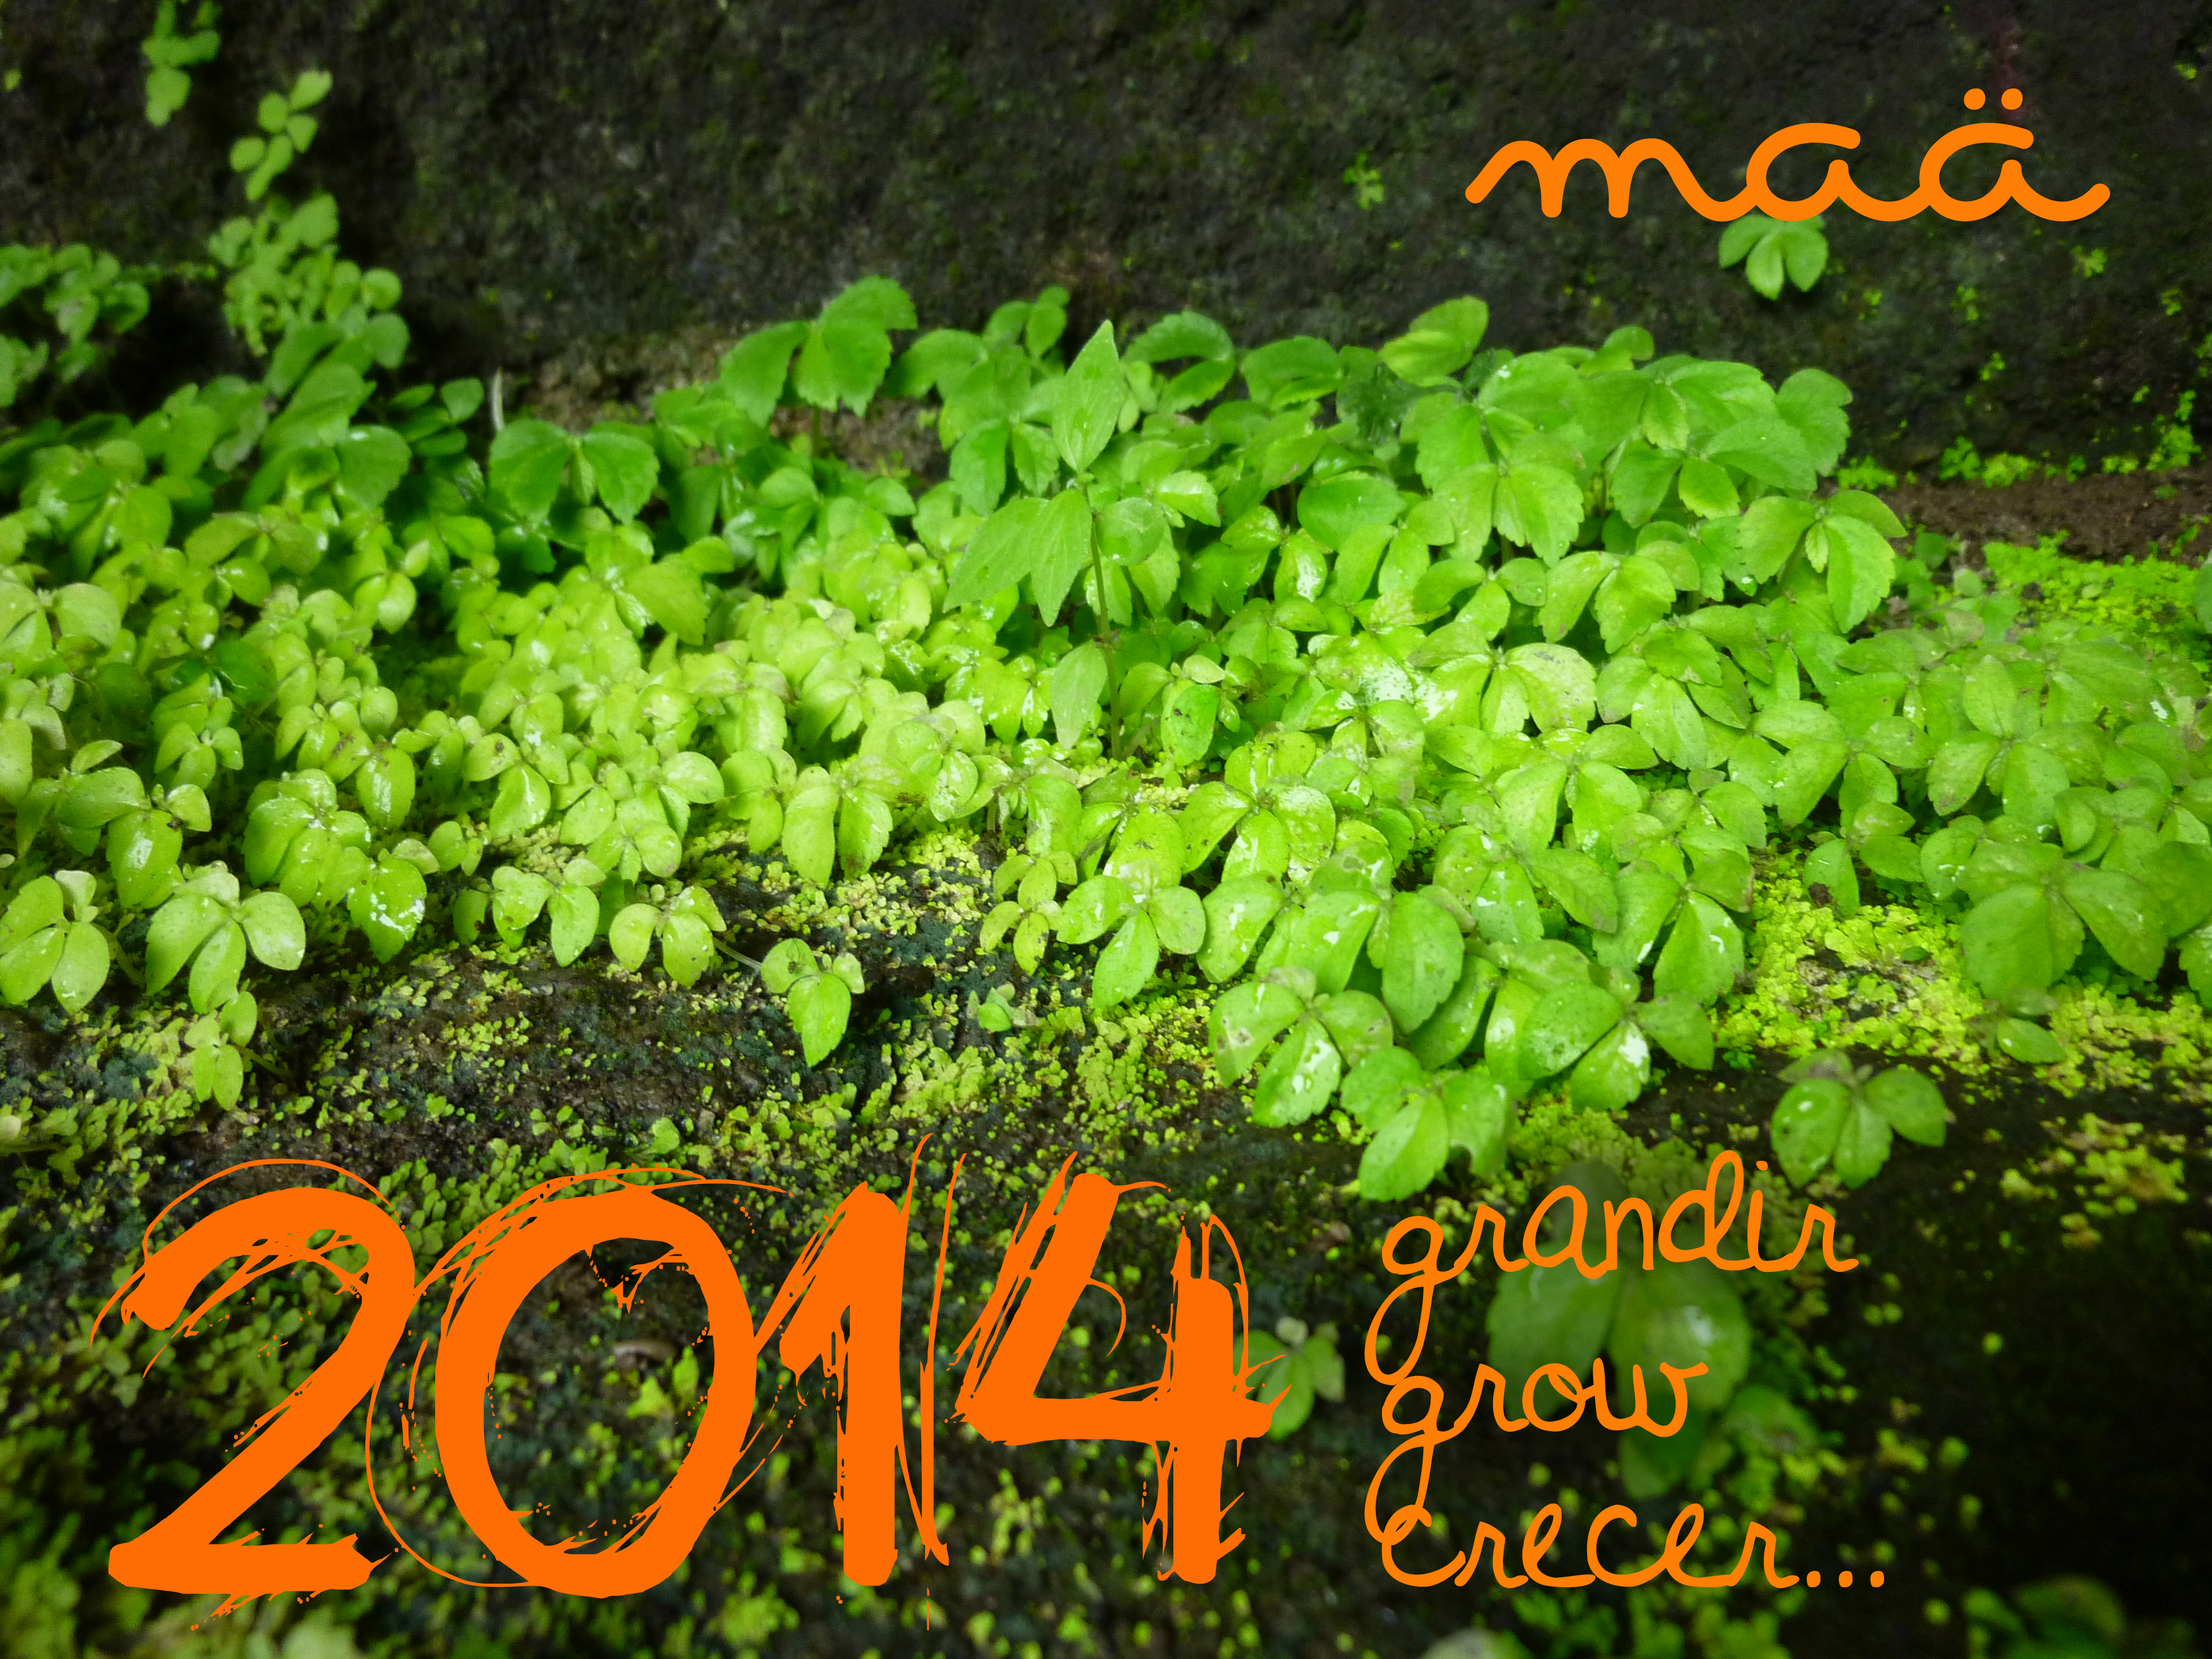 voeux 2014 maa